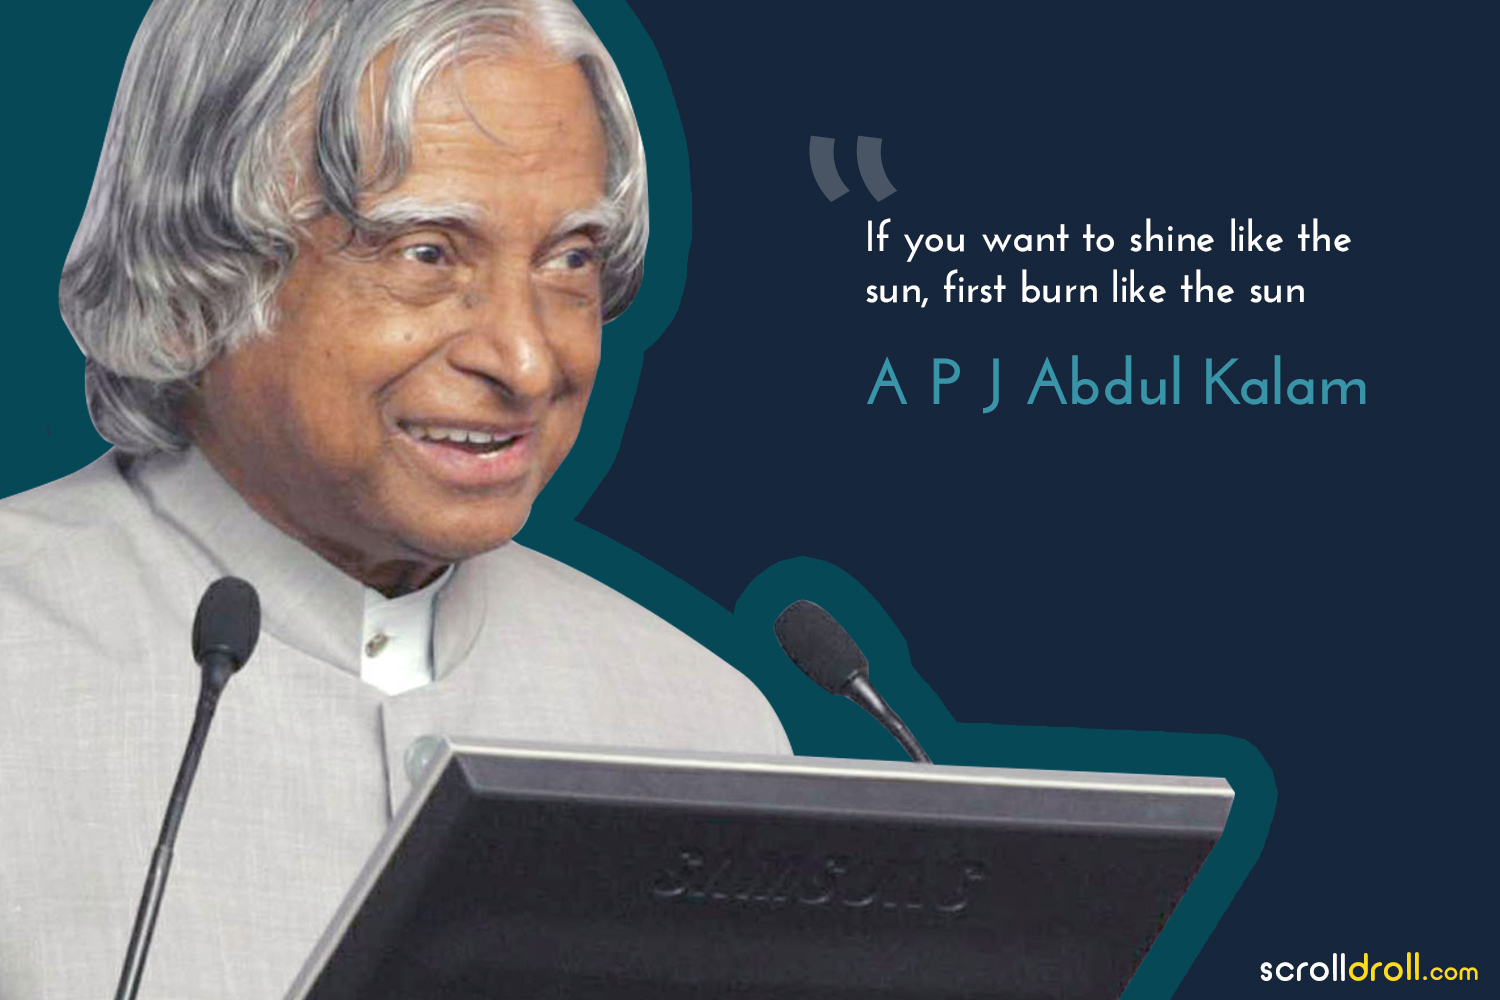 Powerful Quotes By Successful People-quote by apj abdul kalam